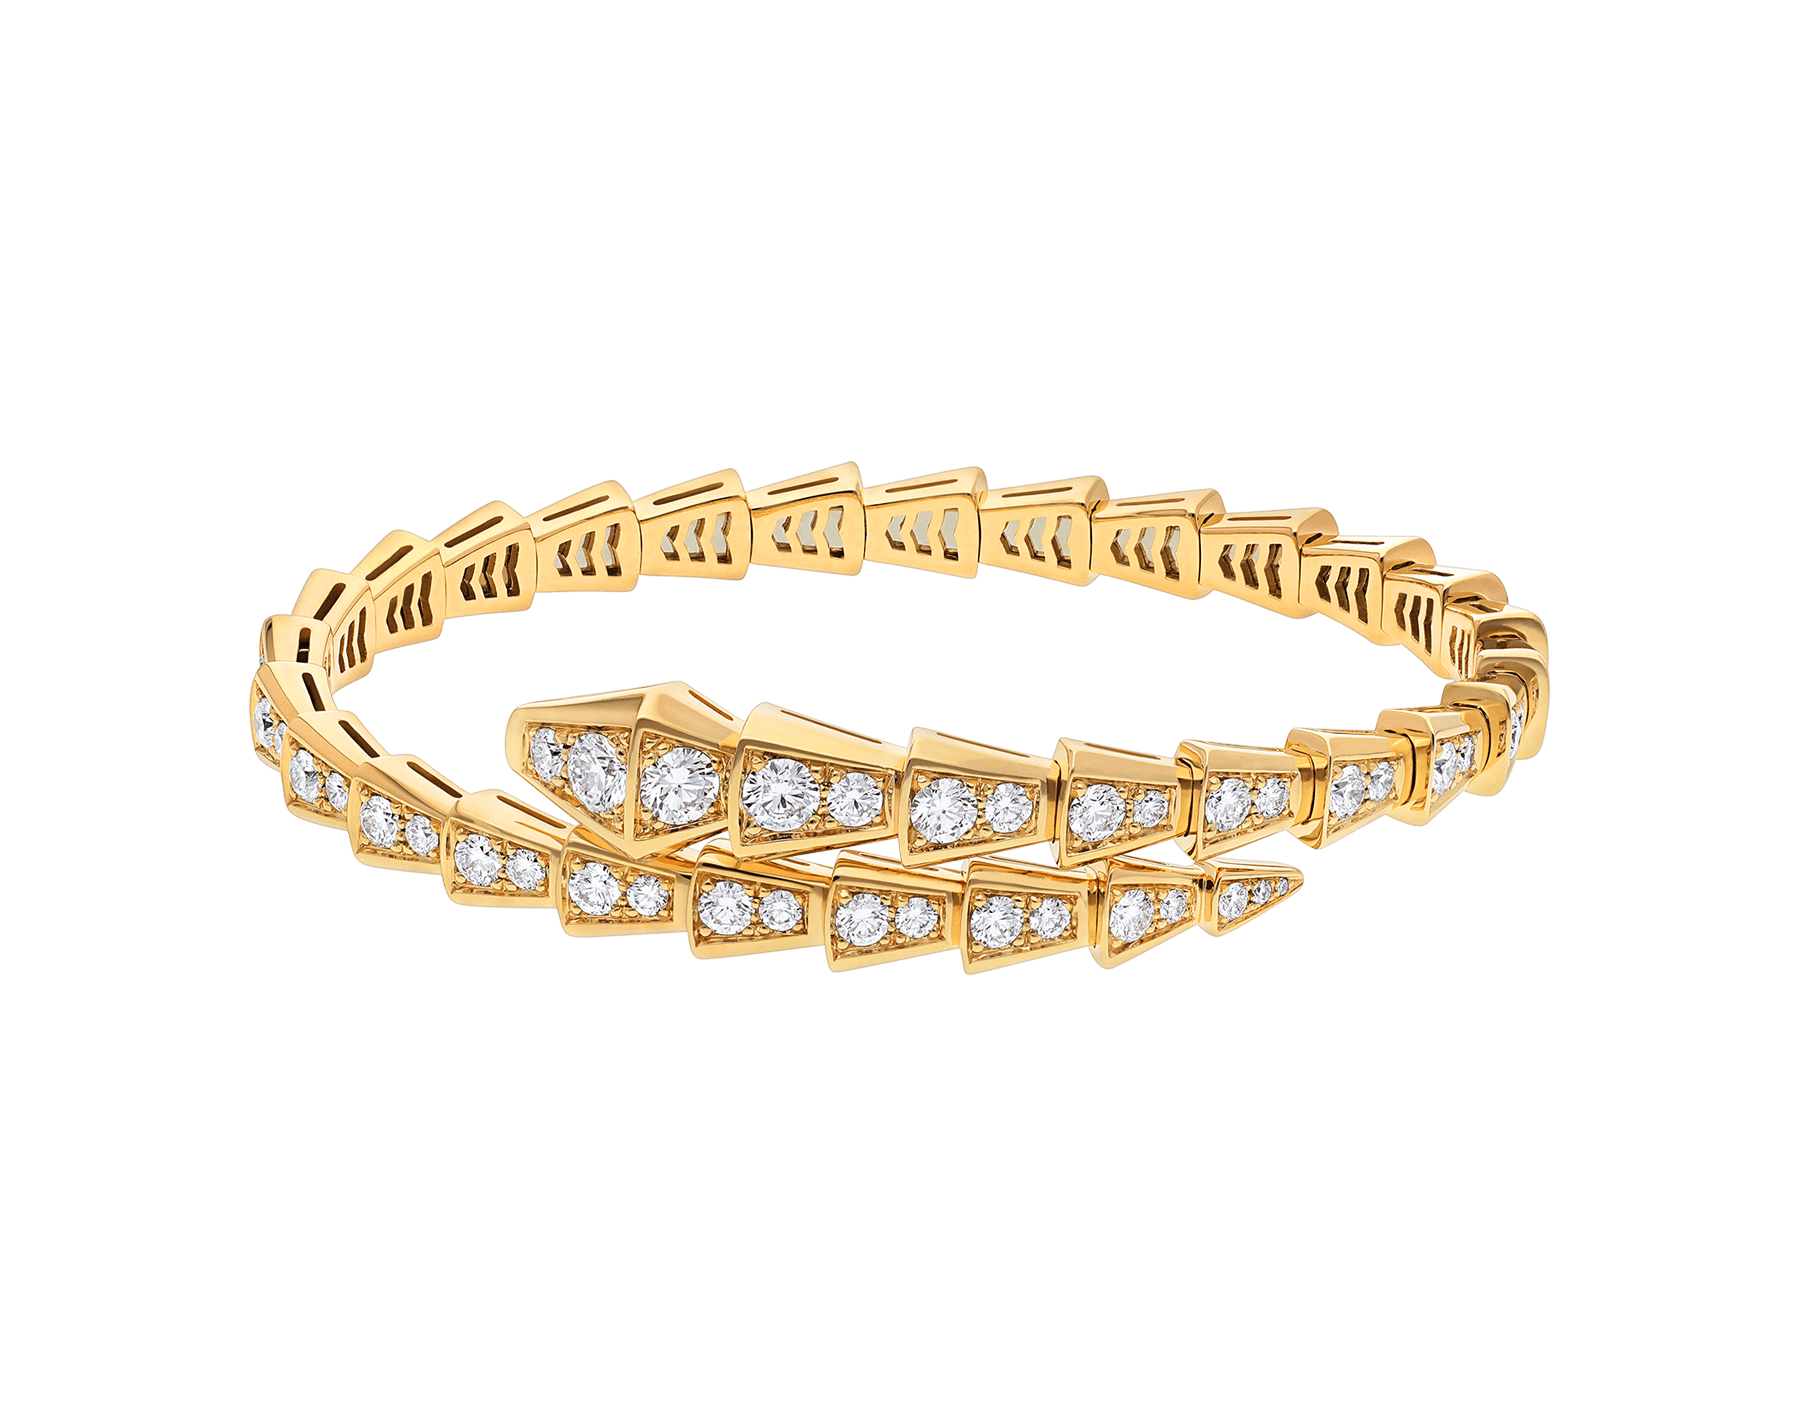 Serpenti Viper 18 kt yellow gold bracelet with pavé diamonds BR858983 image 2